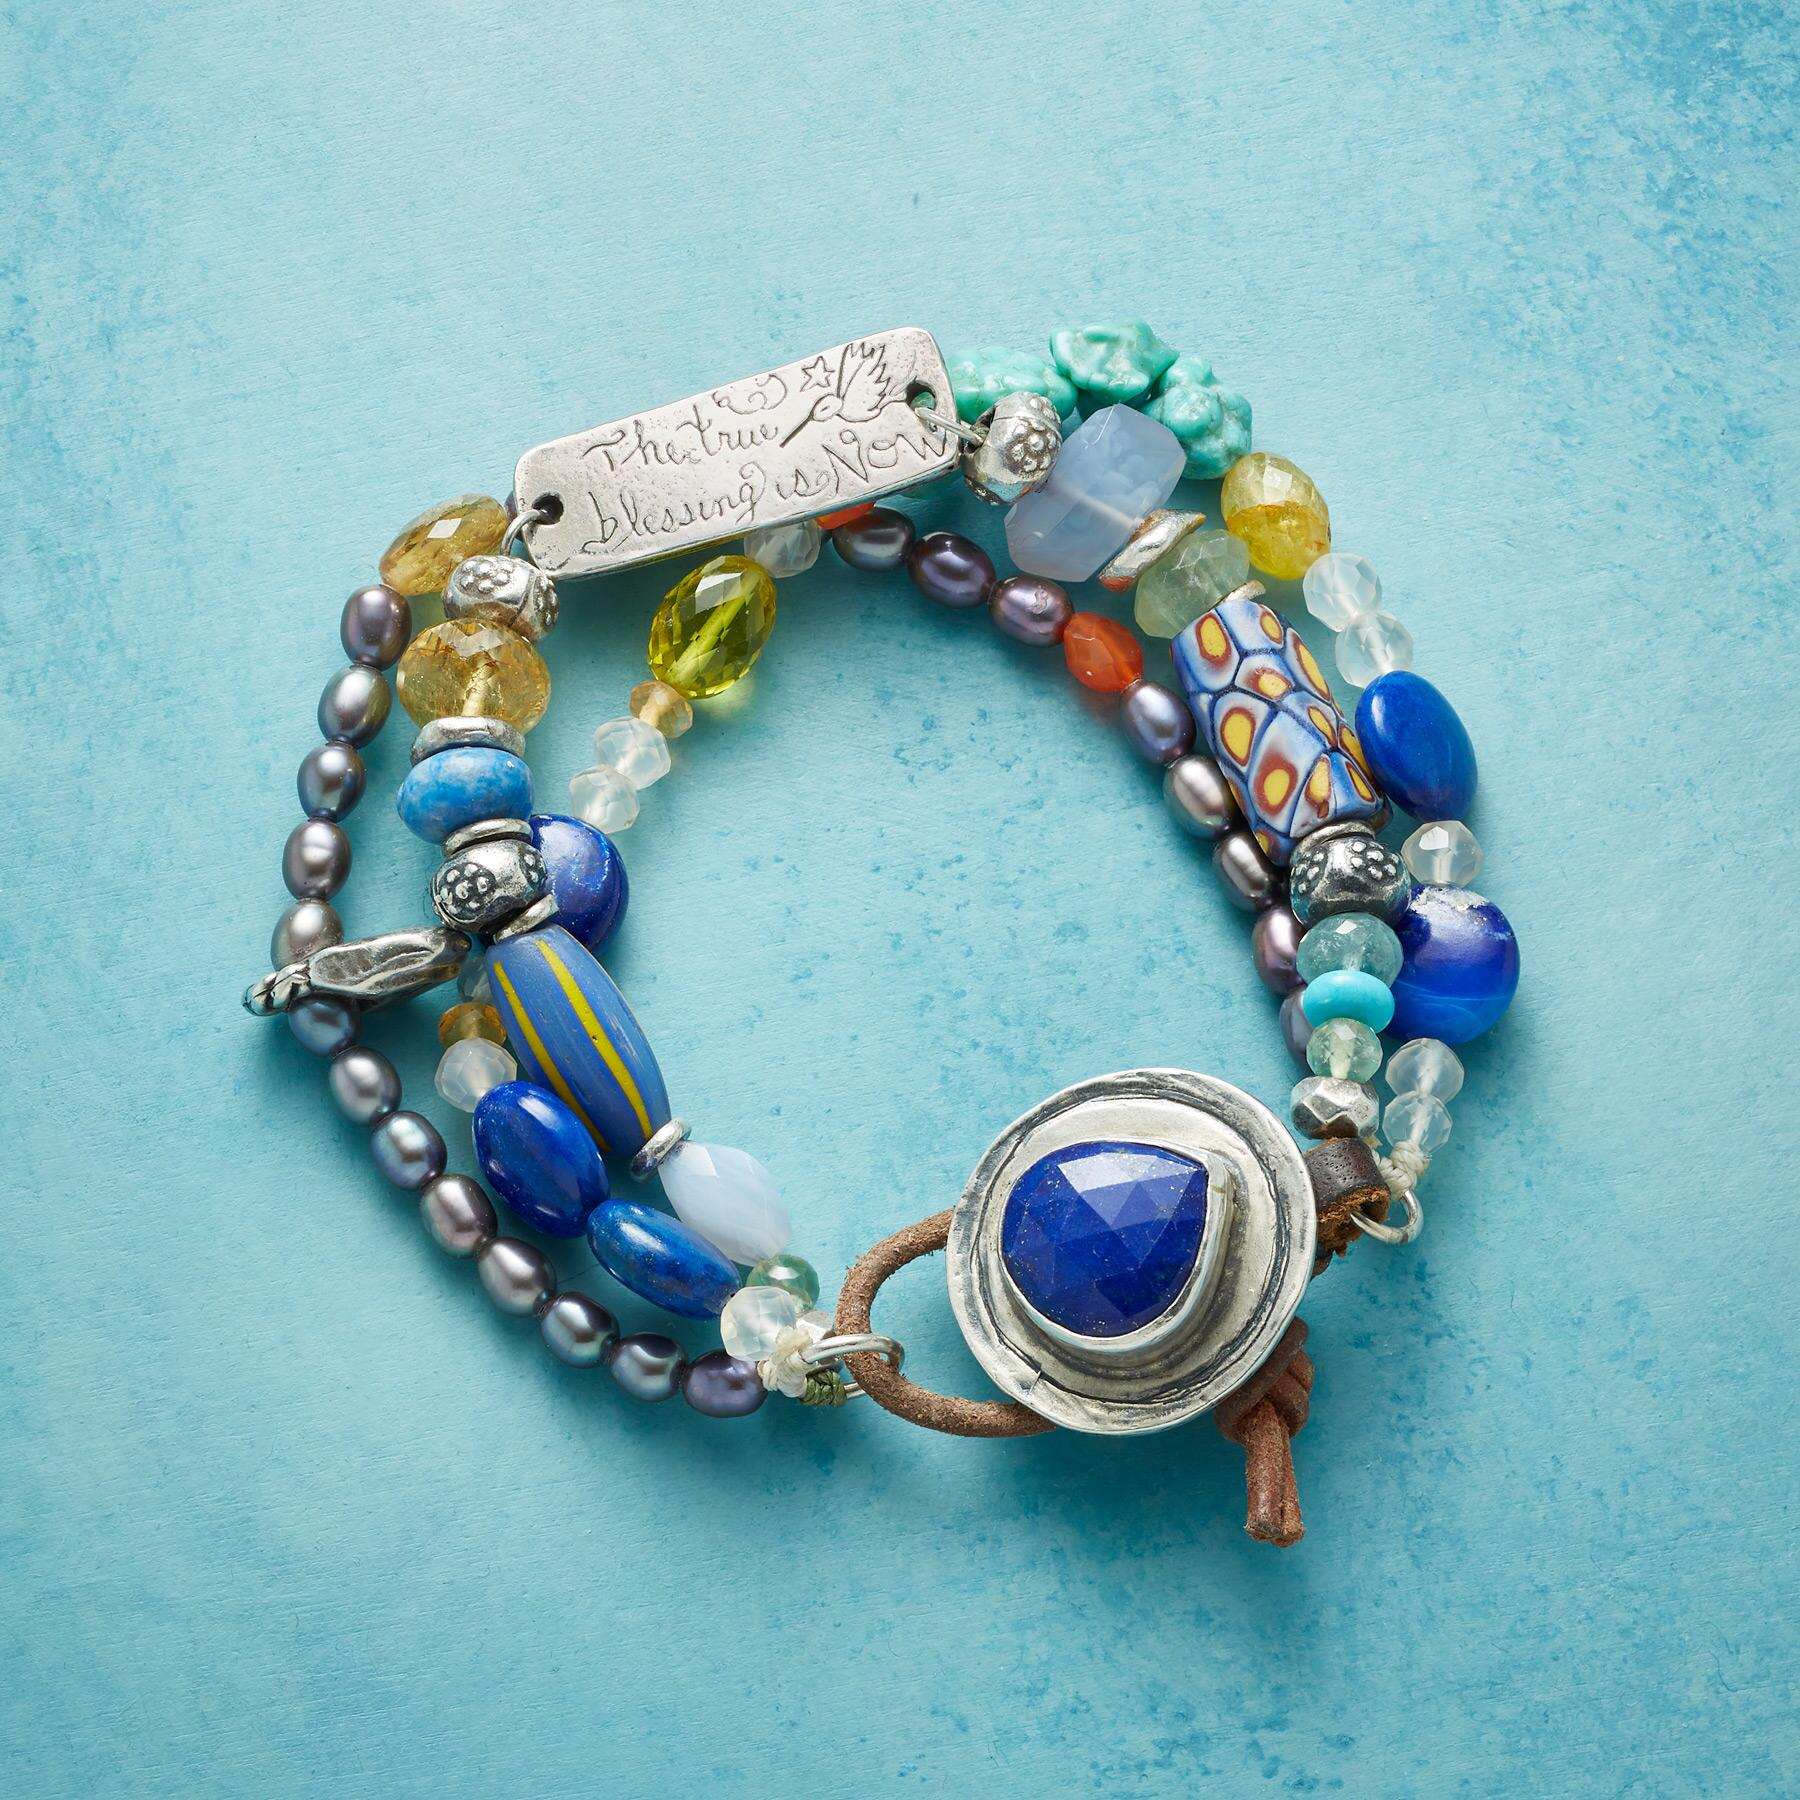 JOYFUL JOURNEY BRACELET: View 1